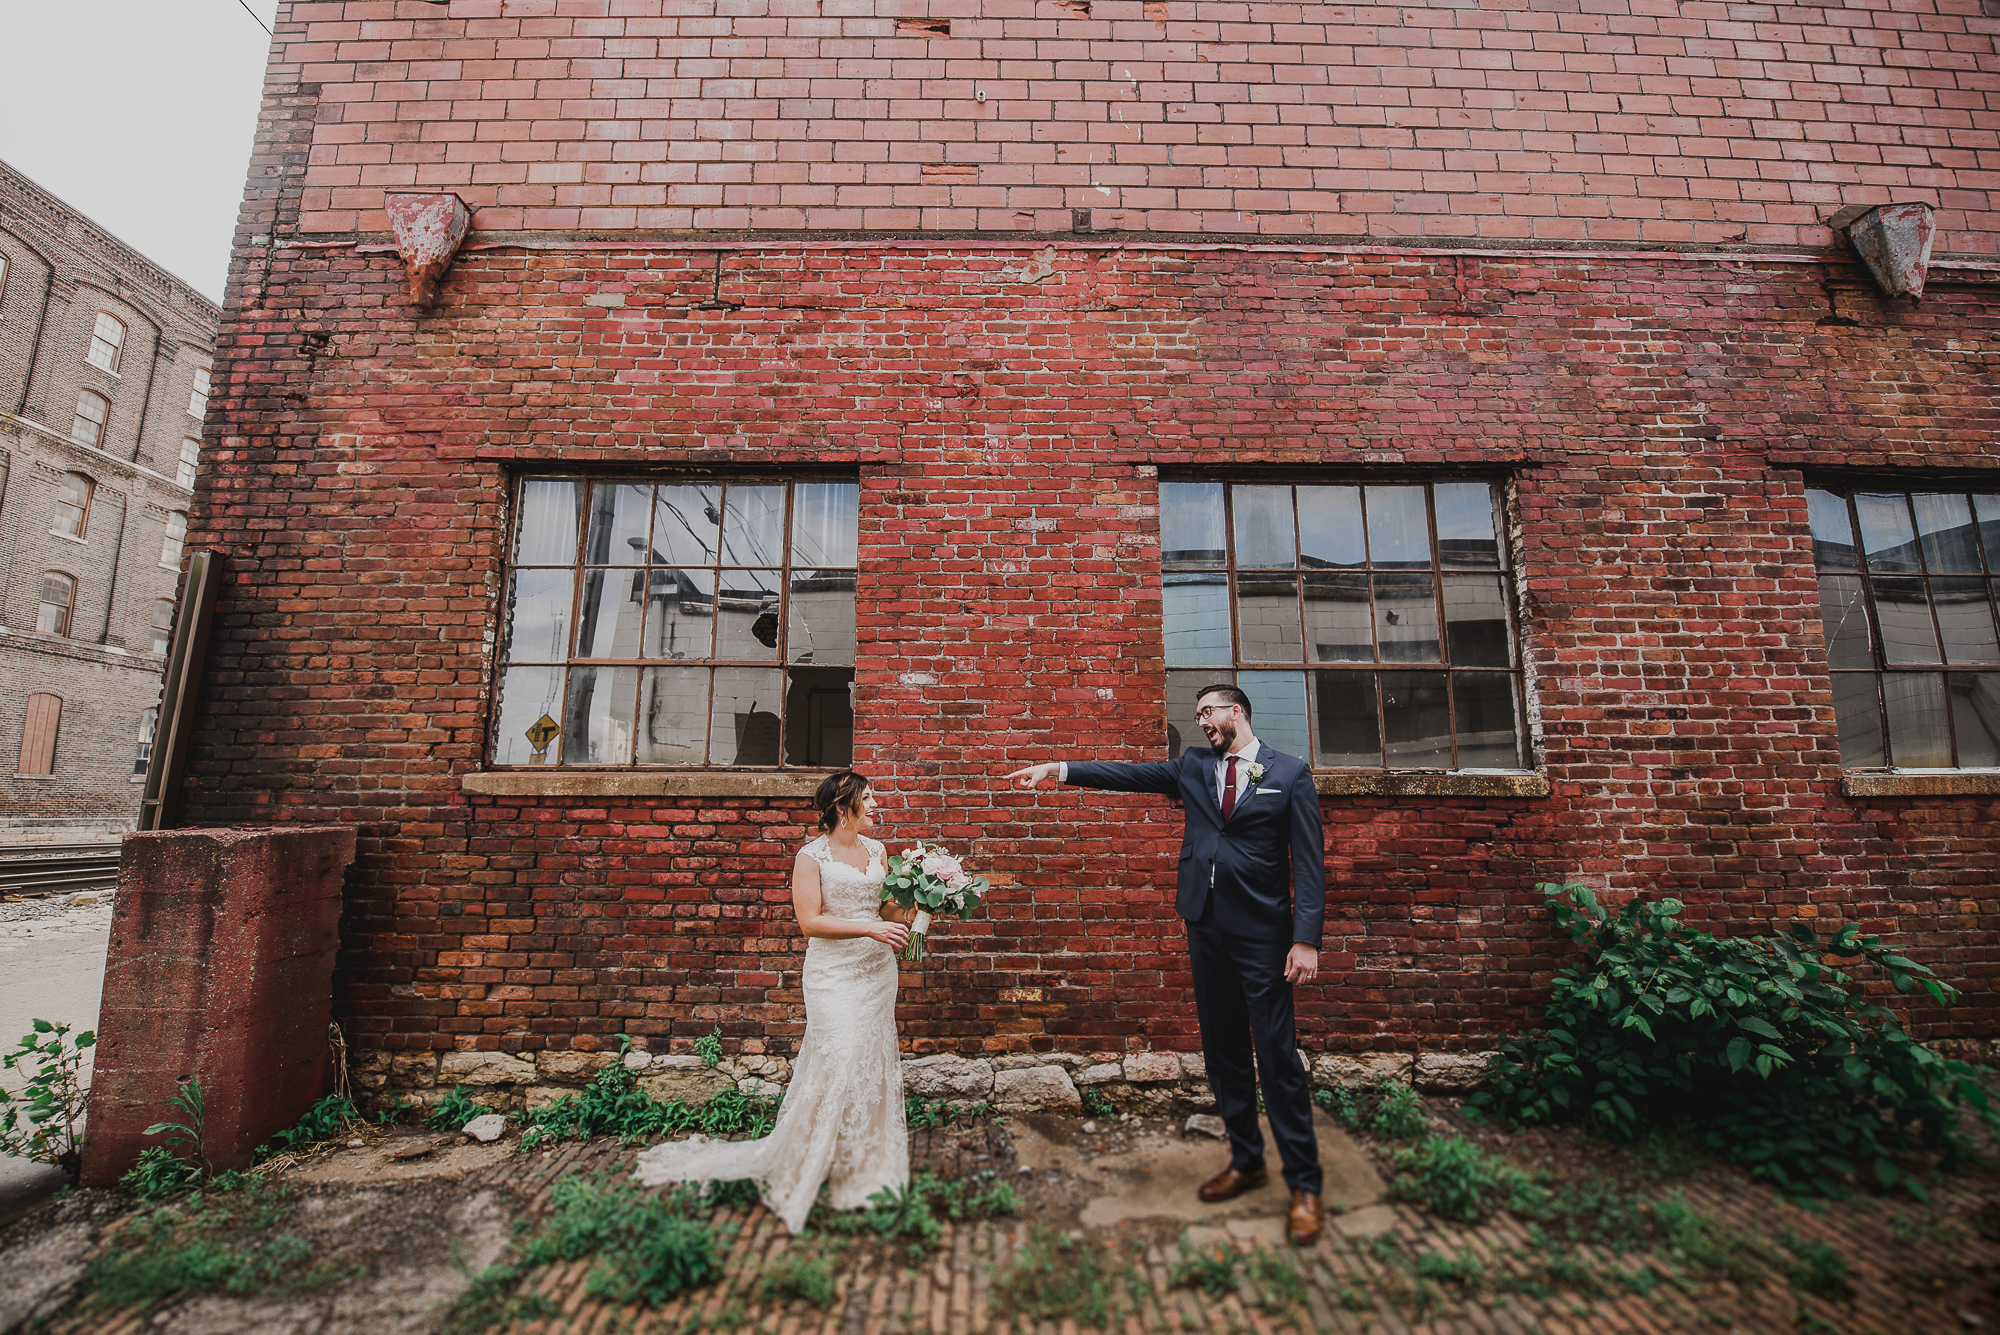 Melissa Cervantes Photography _ Kelsey + Ben Junebug Weddings Submission-97.jpg